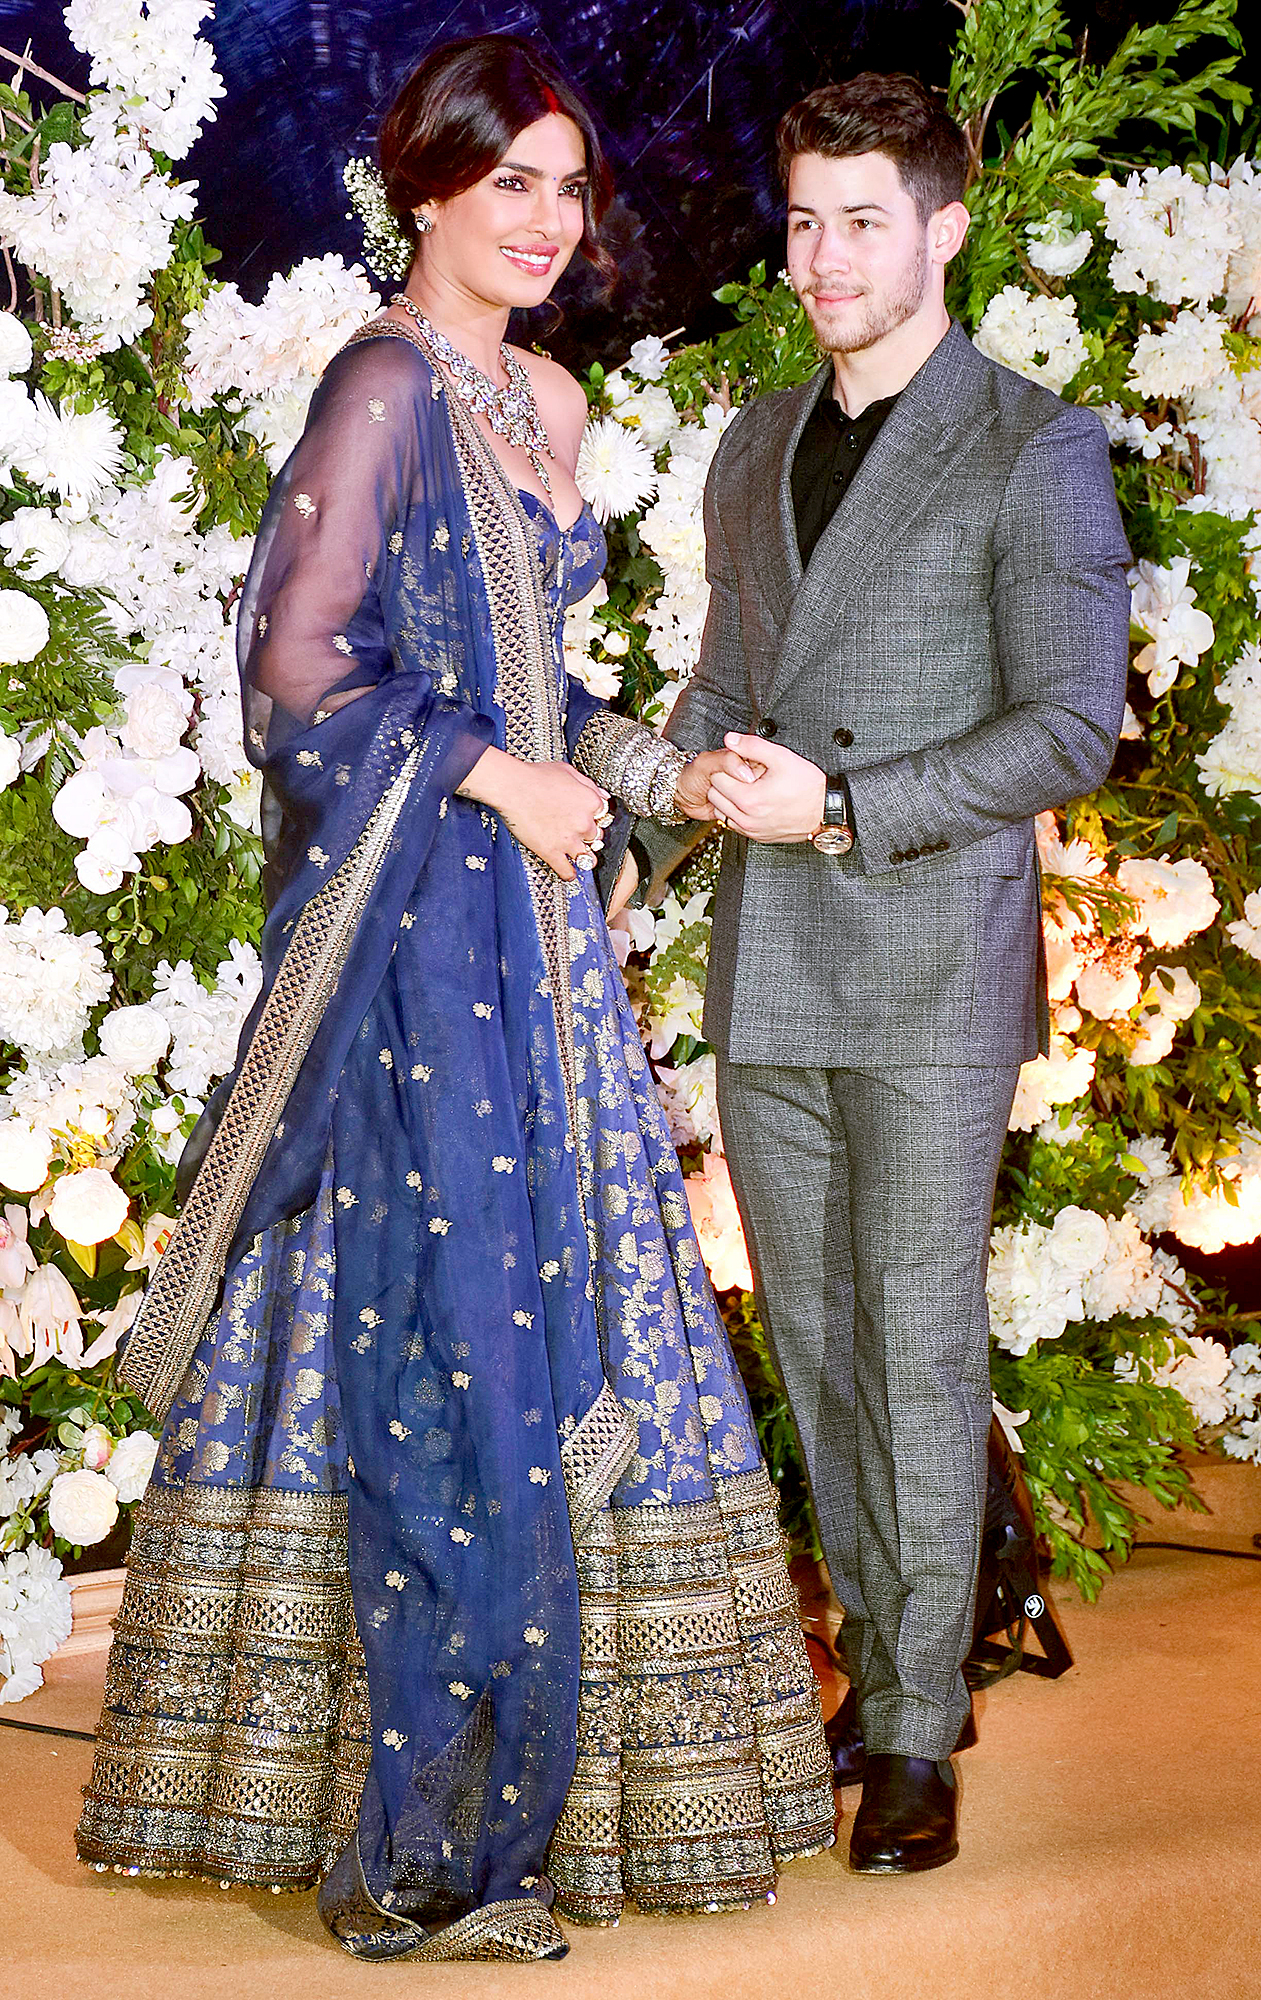 Nick-Jonas-and-Priyanka-Chopra-Mumbai-Wedding-Reception - The pair's wedding festivities kicked off on November 28 with a traditional Puja ceremony to honor their union. On November 30, they hosted a Sangeet, a traditional pre-wedding celebration with dance and music.